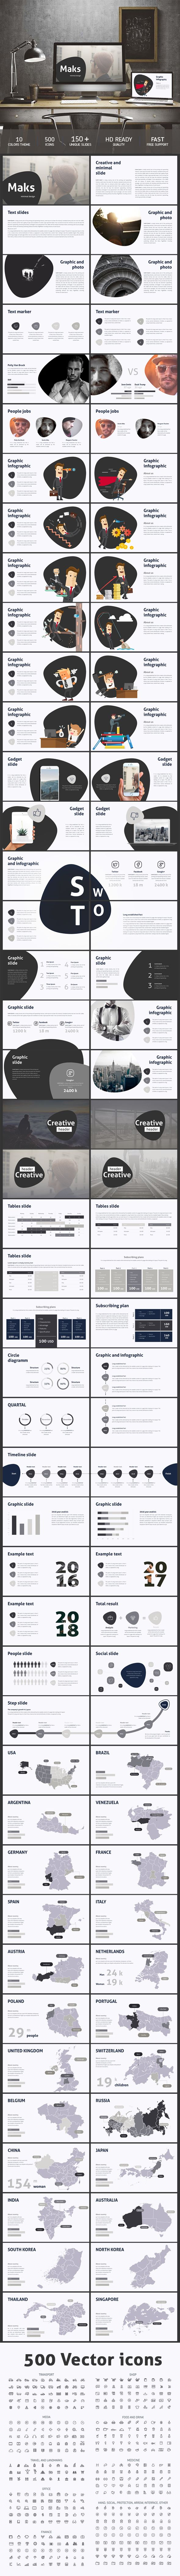 Maks PowerPoint Presentation Template